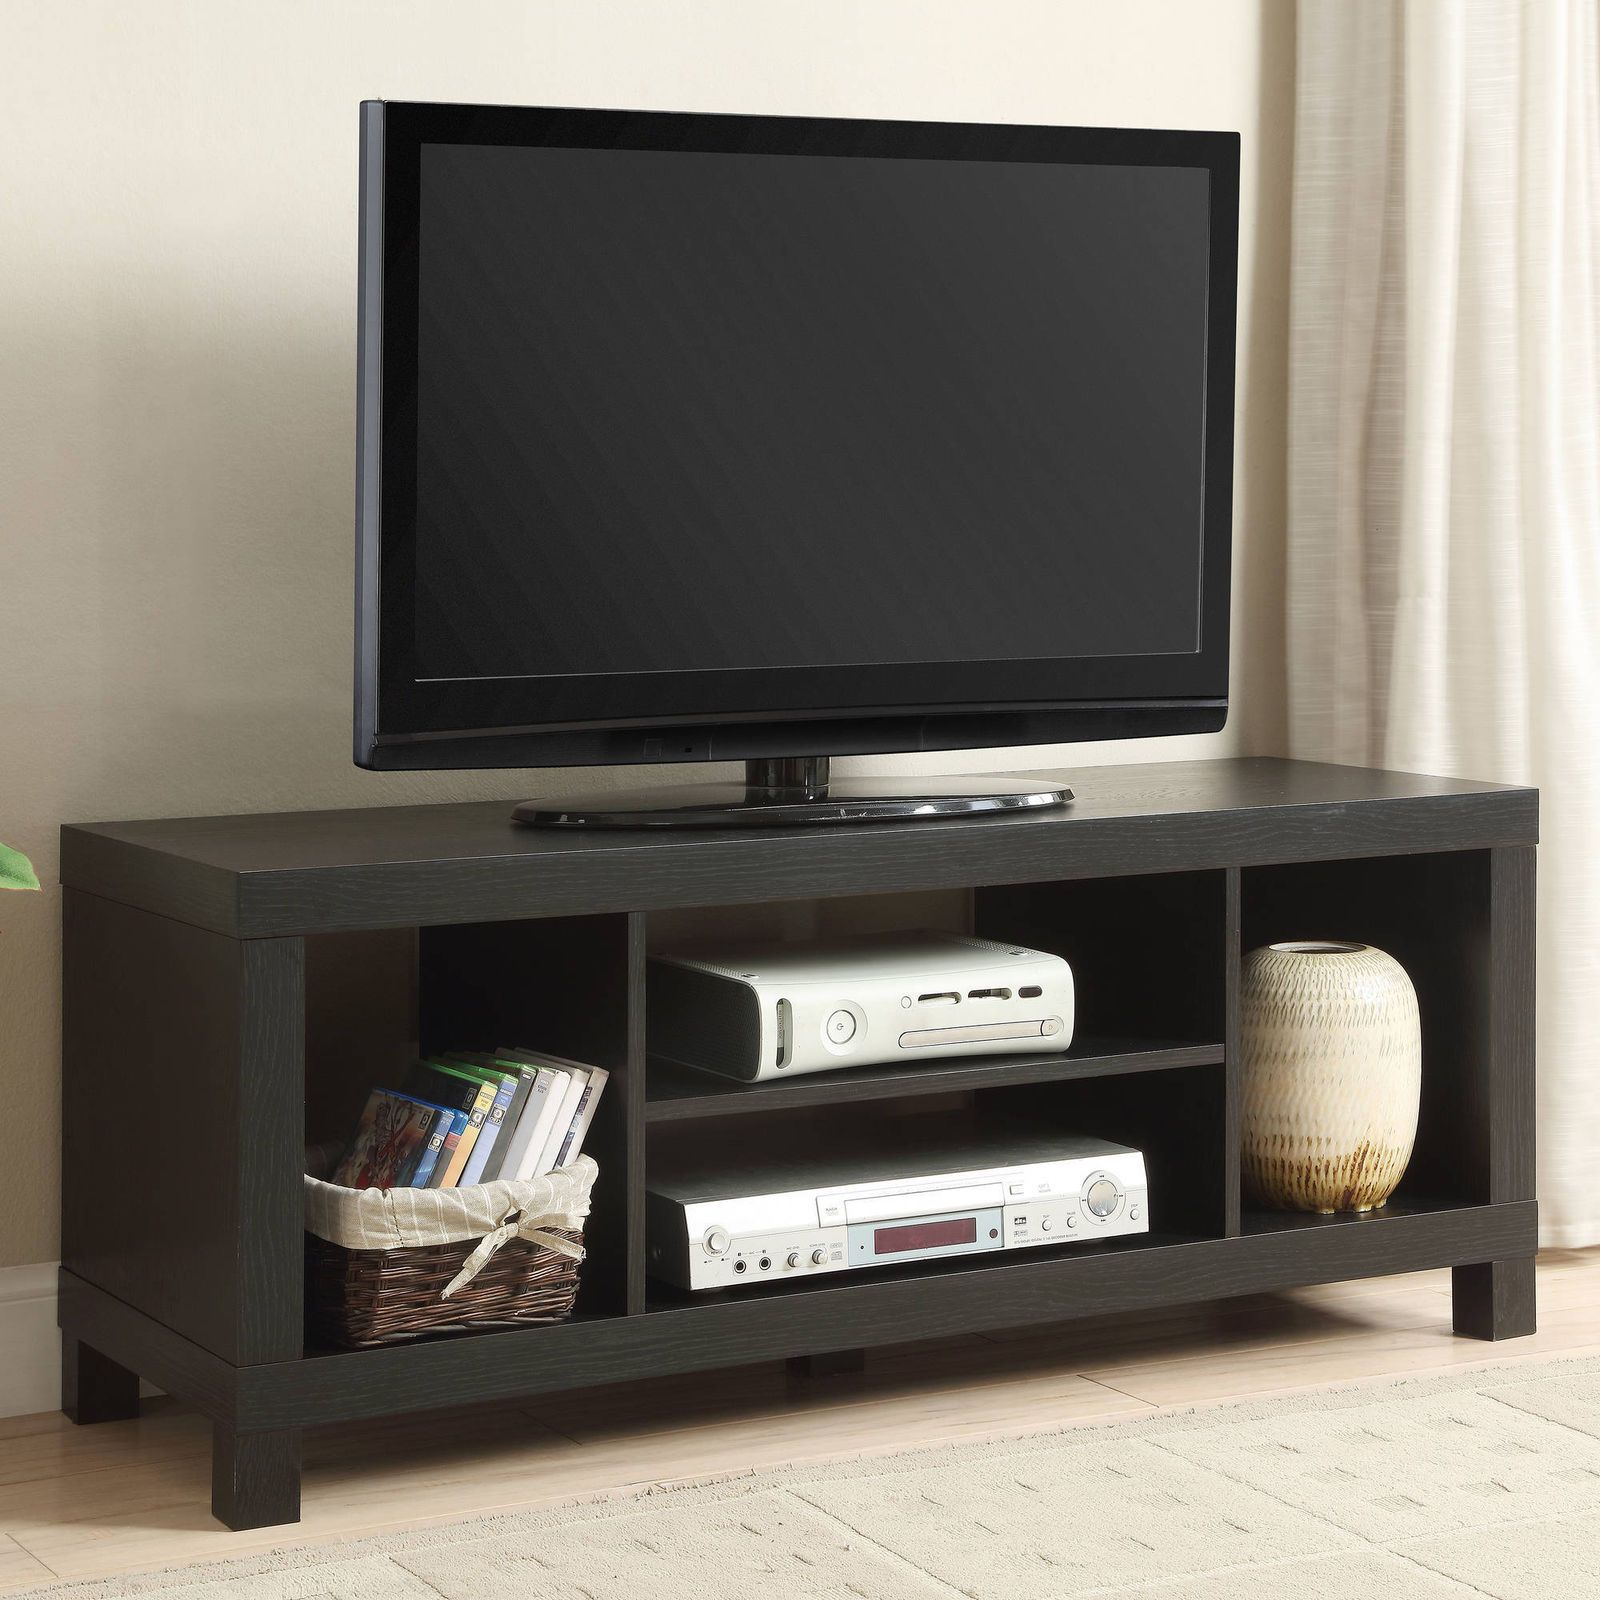 50 Flat Screen Tv Stand Wood Storage Cabinet Home Media Console